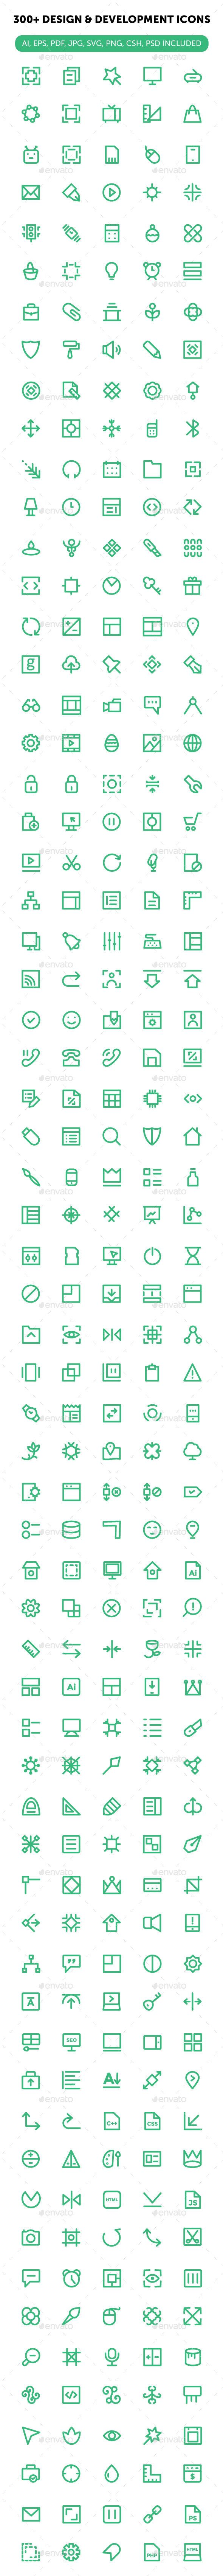 300+ Design and Development Icons. Download here: http://graphicriver.net/item/300-design-and-development-icons/16565674?ref=ksioks